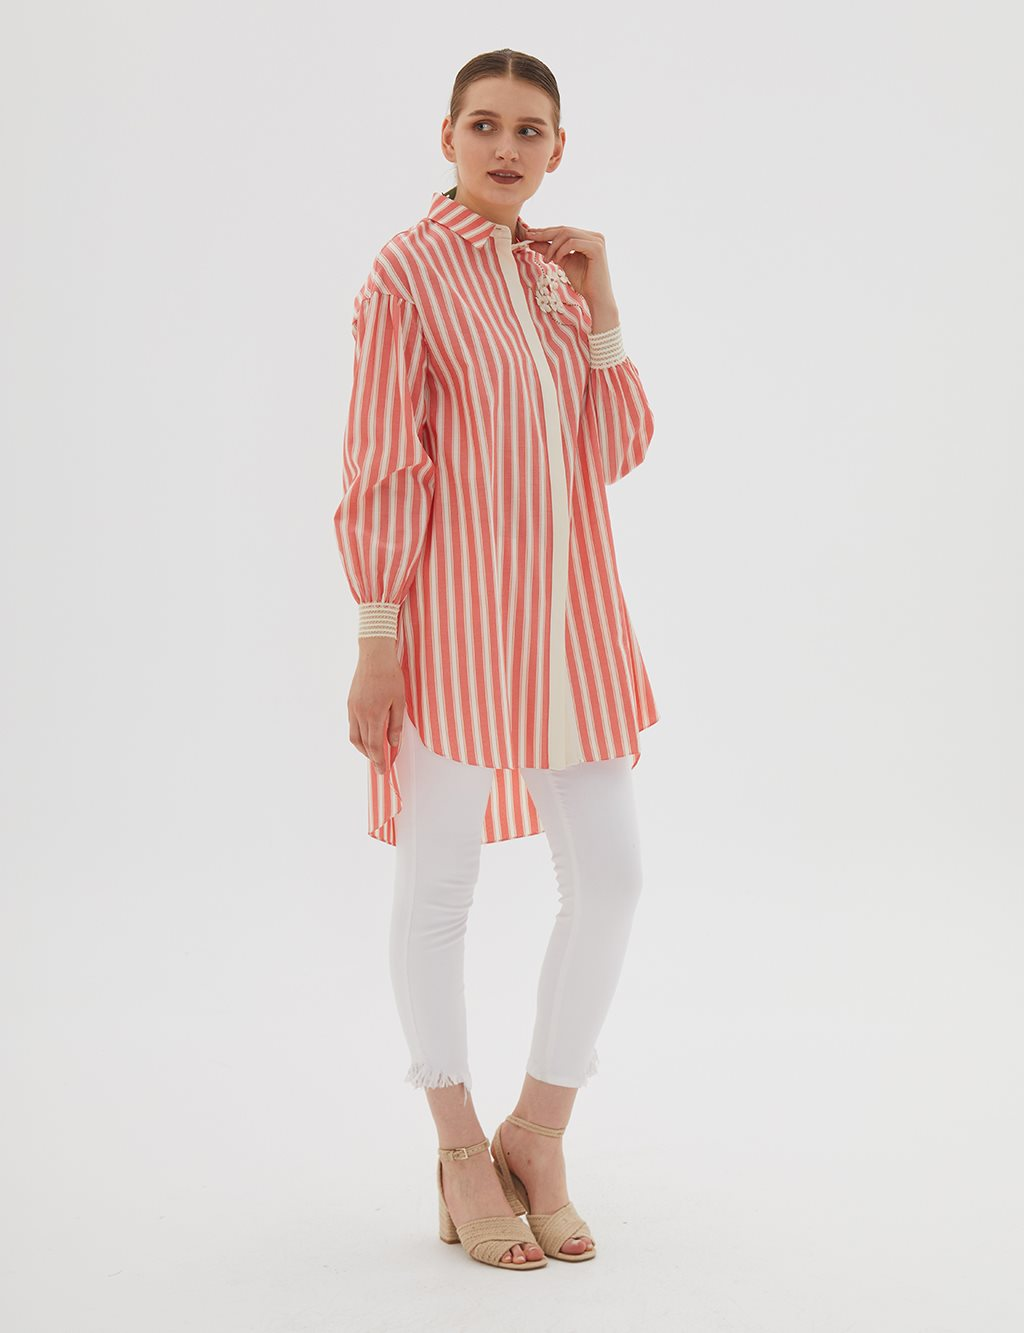 KYR Striped Tunic With Flower Details B20 81338 Pomegranate